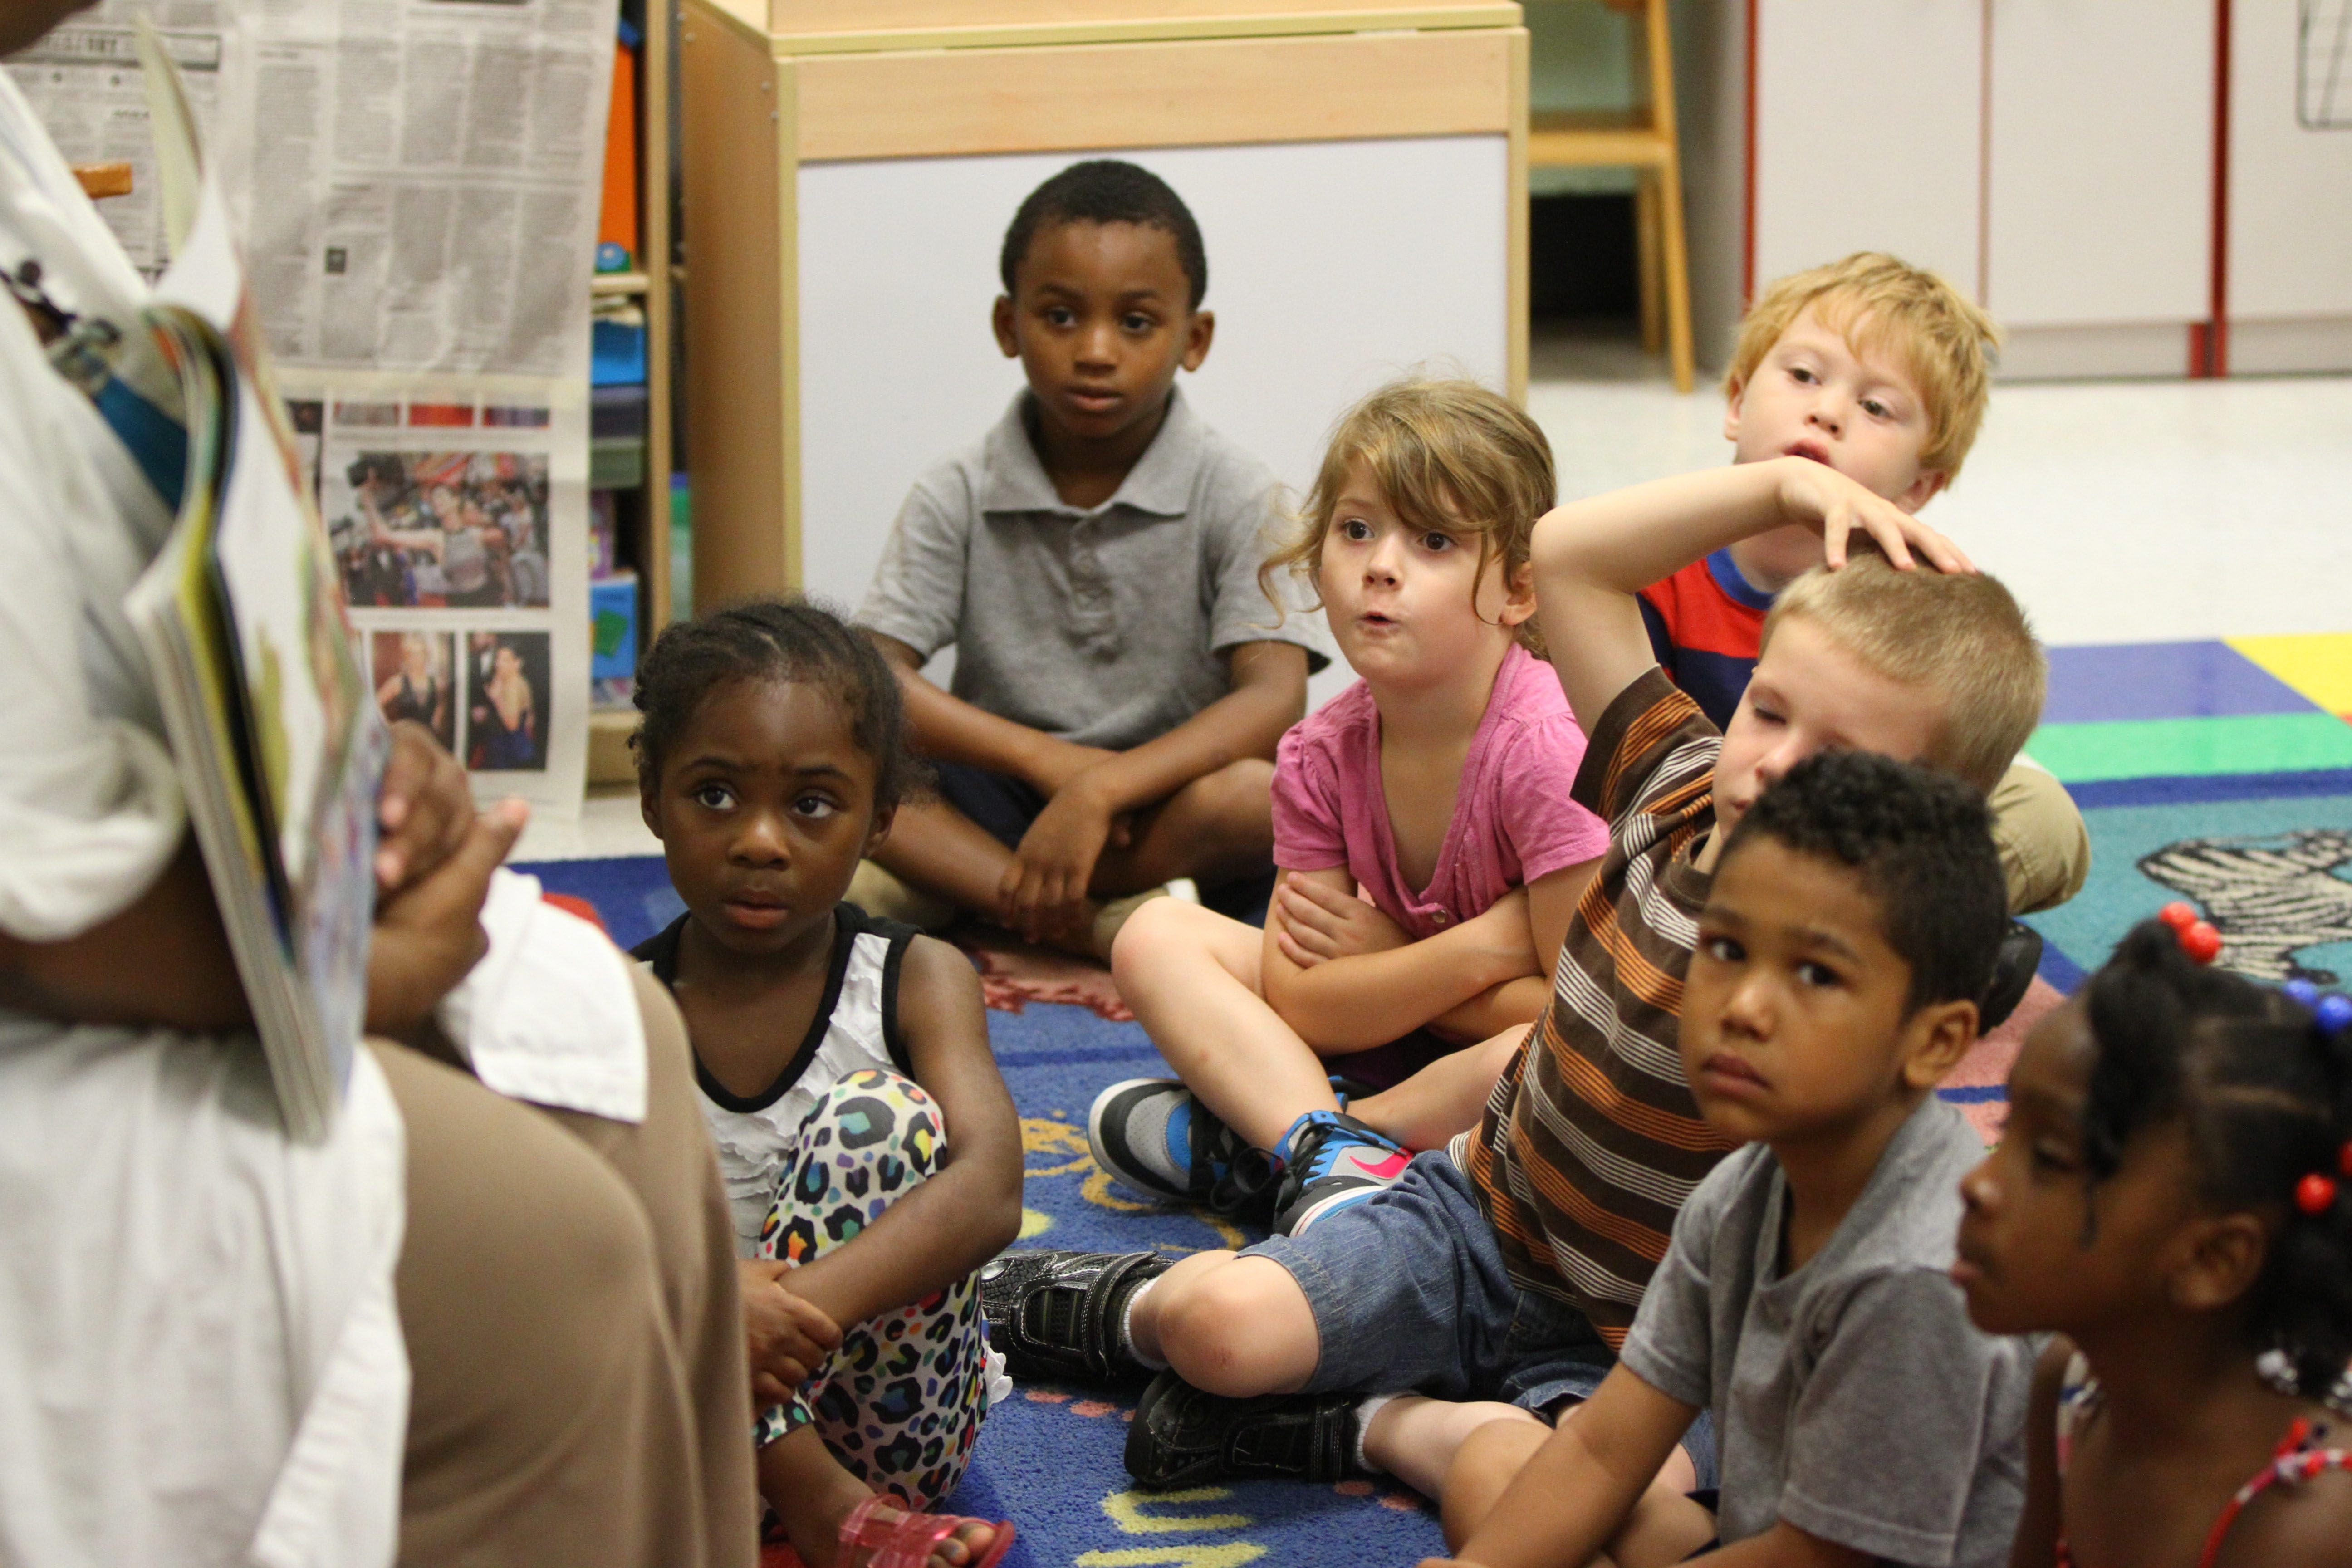 Pre-K students listen to a story at the Dr. George E. Blackman School of Excellence in Buffalo on July 23. Local developers are partnering with Say Yes Buffalo to build scholarship funds.